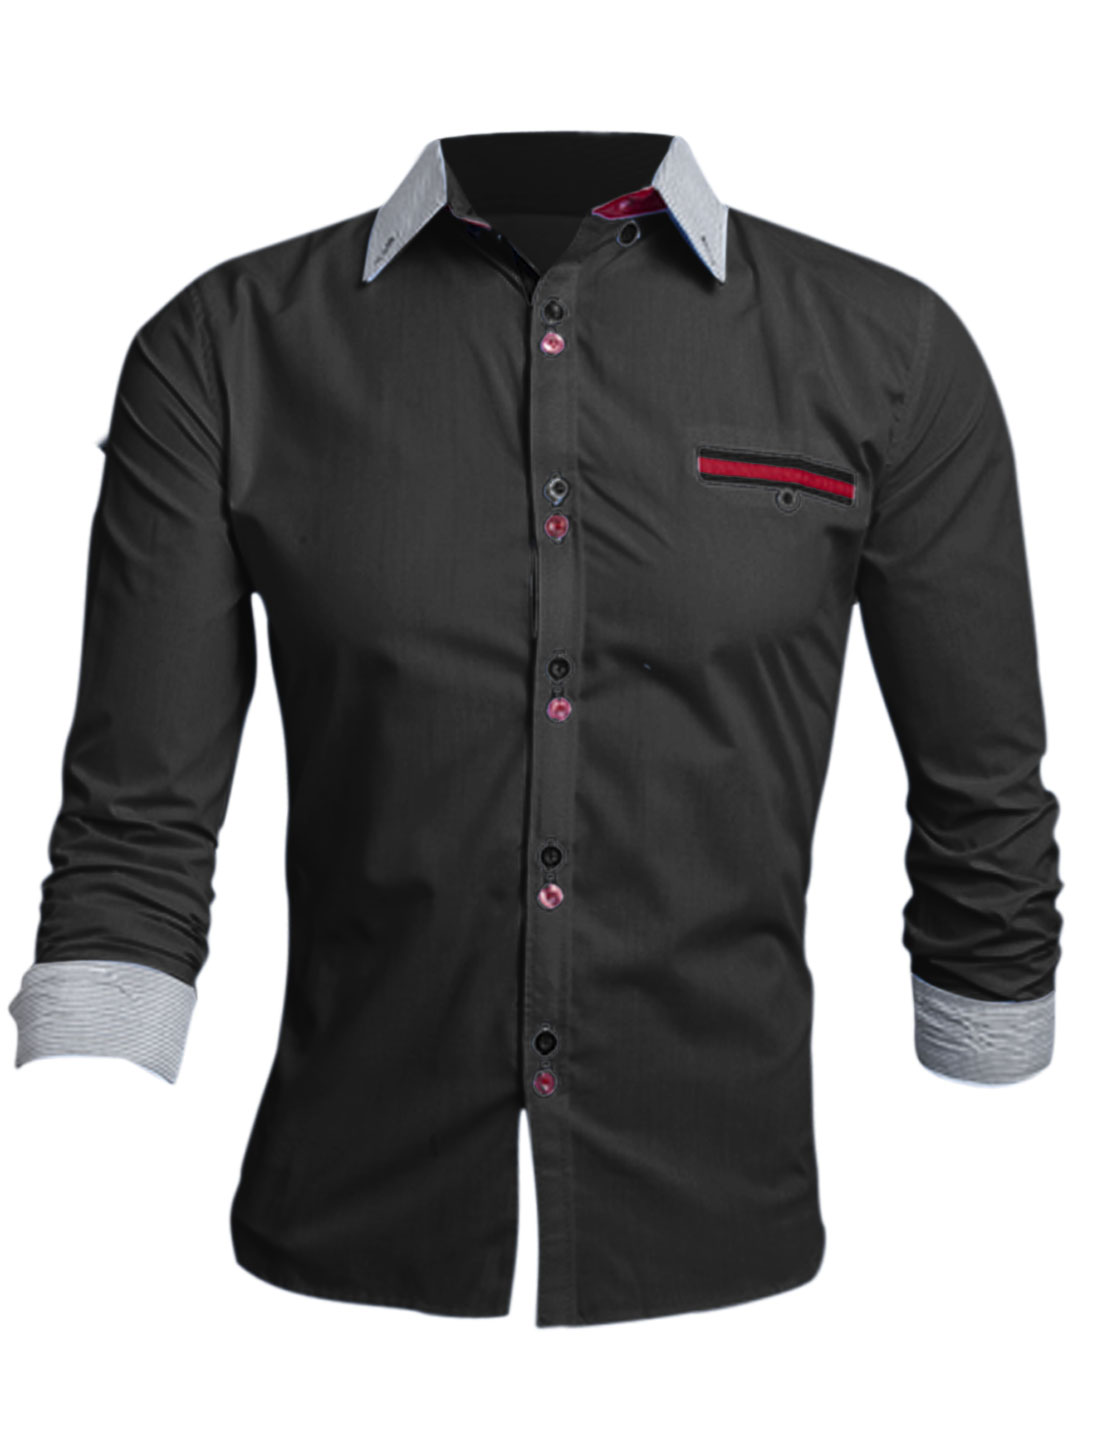 Men Black Single Breasted Point Collar One Mock Pocket Casual Shirt M